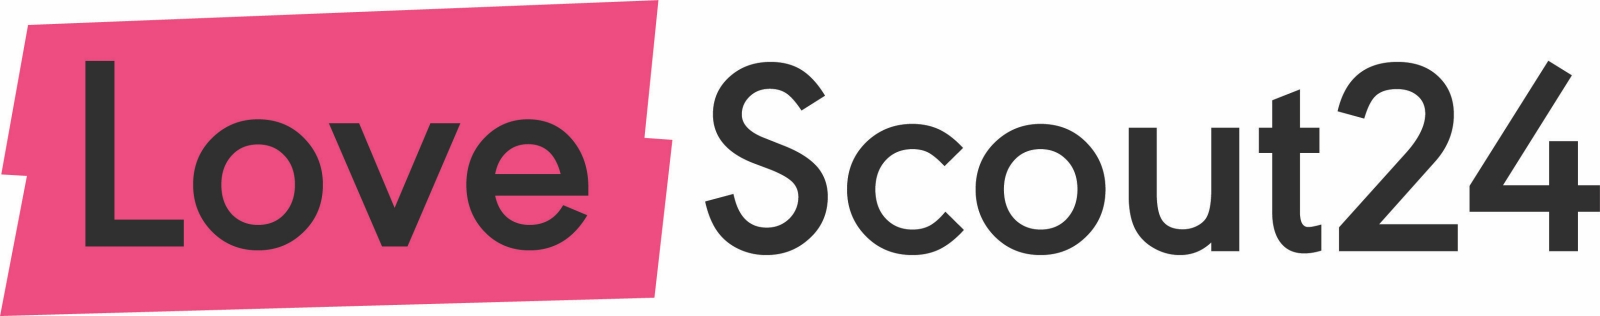 Lovescout24 im Test